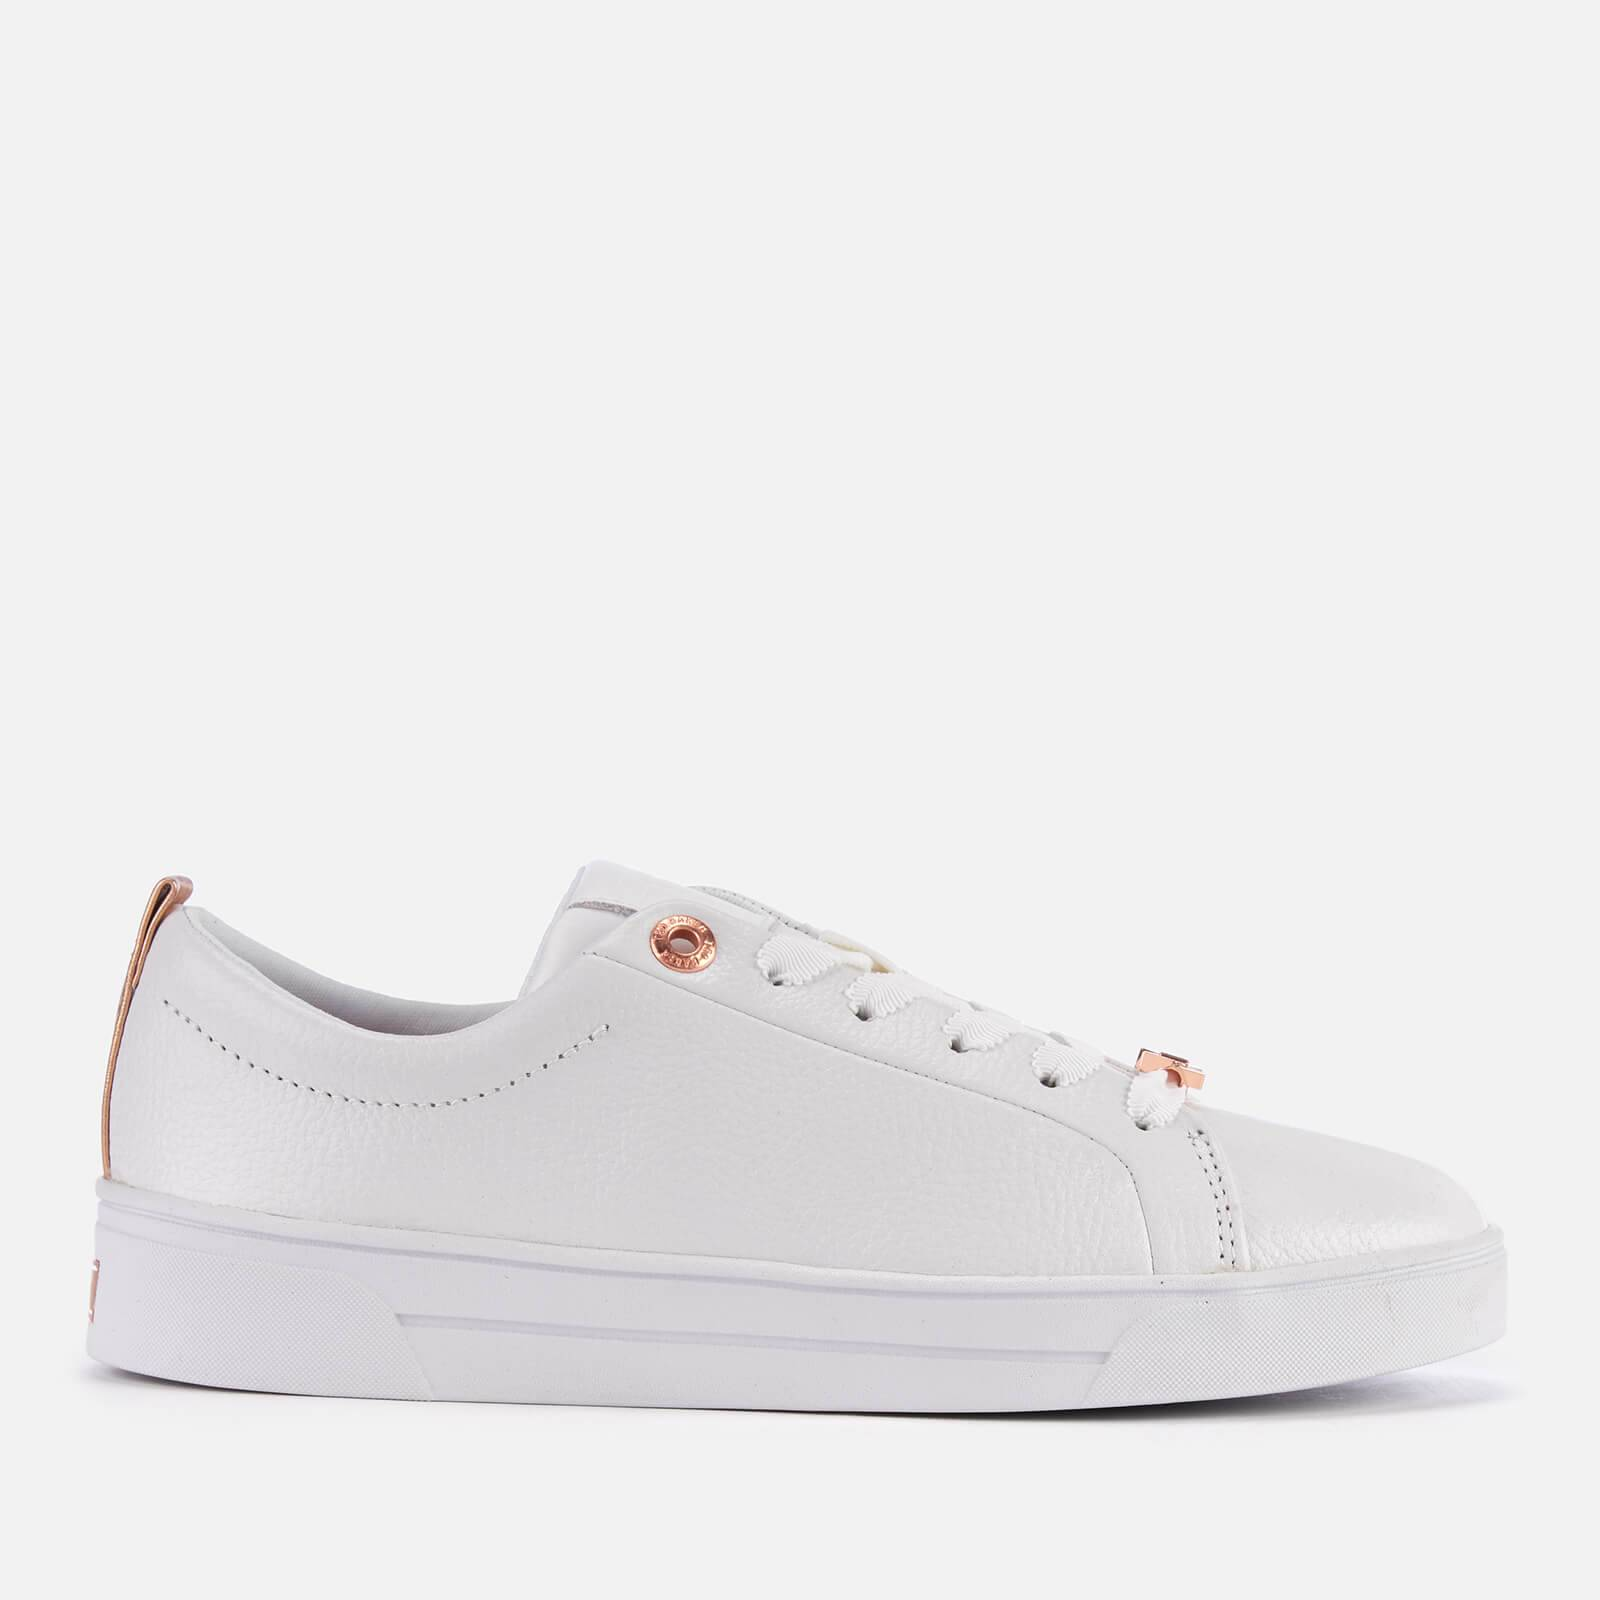 Ted Baker Women's Gielli Leather Cupsole Trainers - White - UK 8 - White